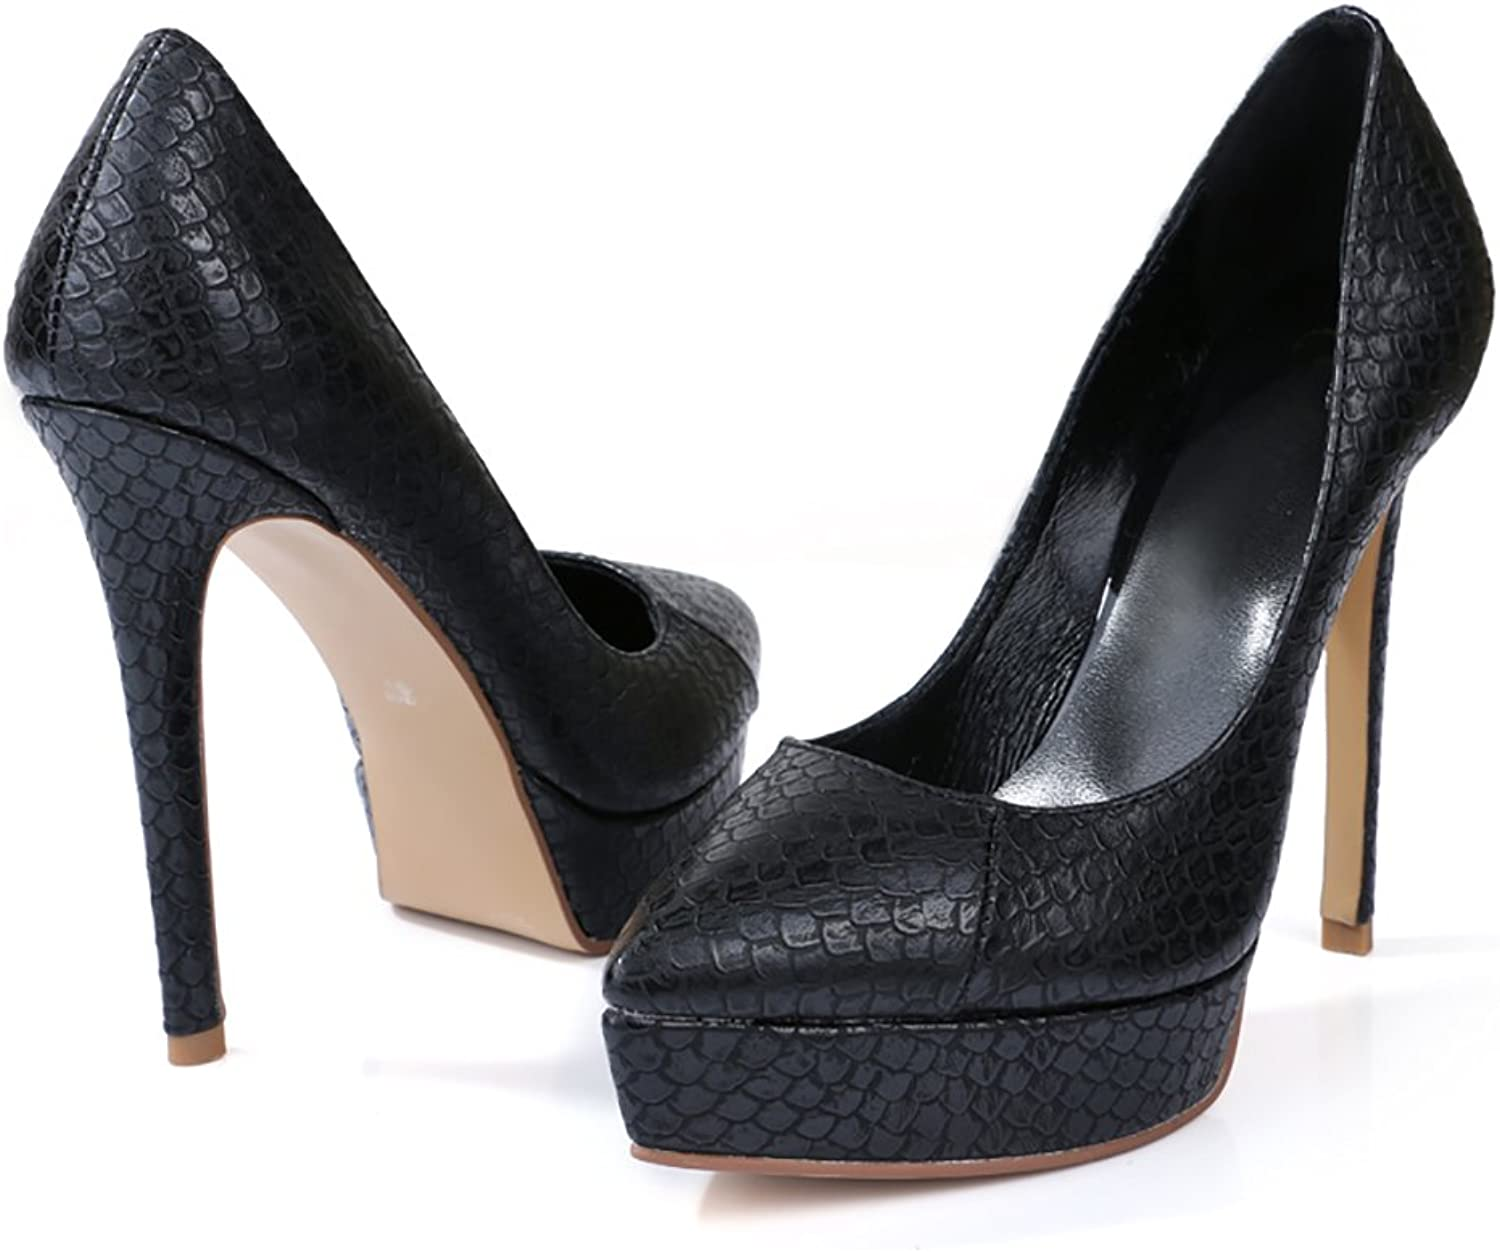 Lacitena Soft Goatskin Leather Women's Pointed Toe Stiletto Heels, Pumps Dress shoes Office shoes